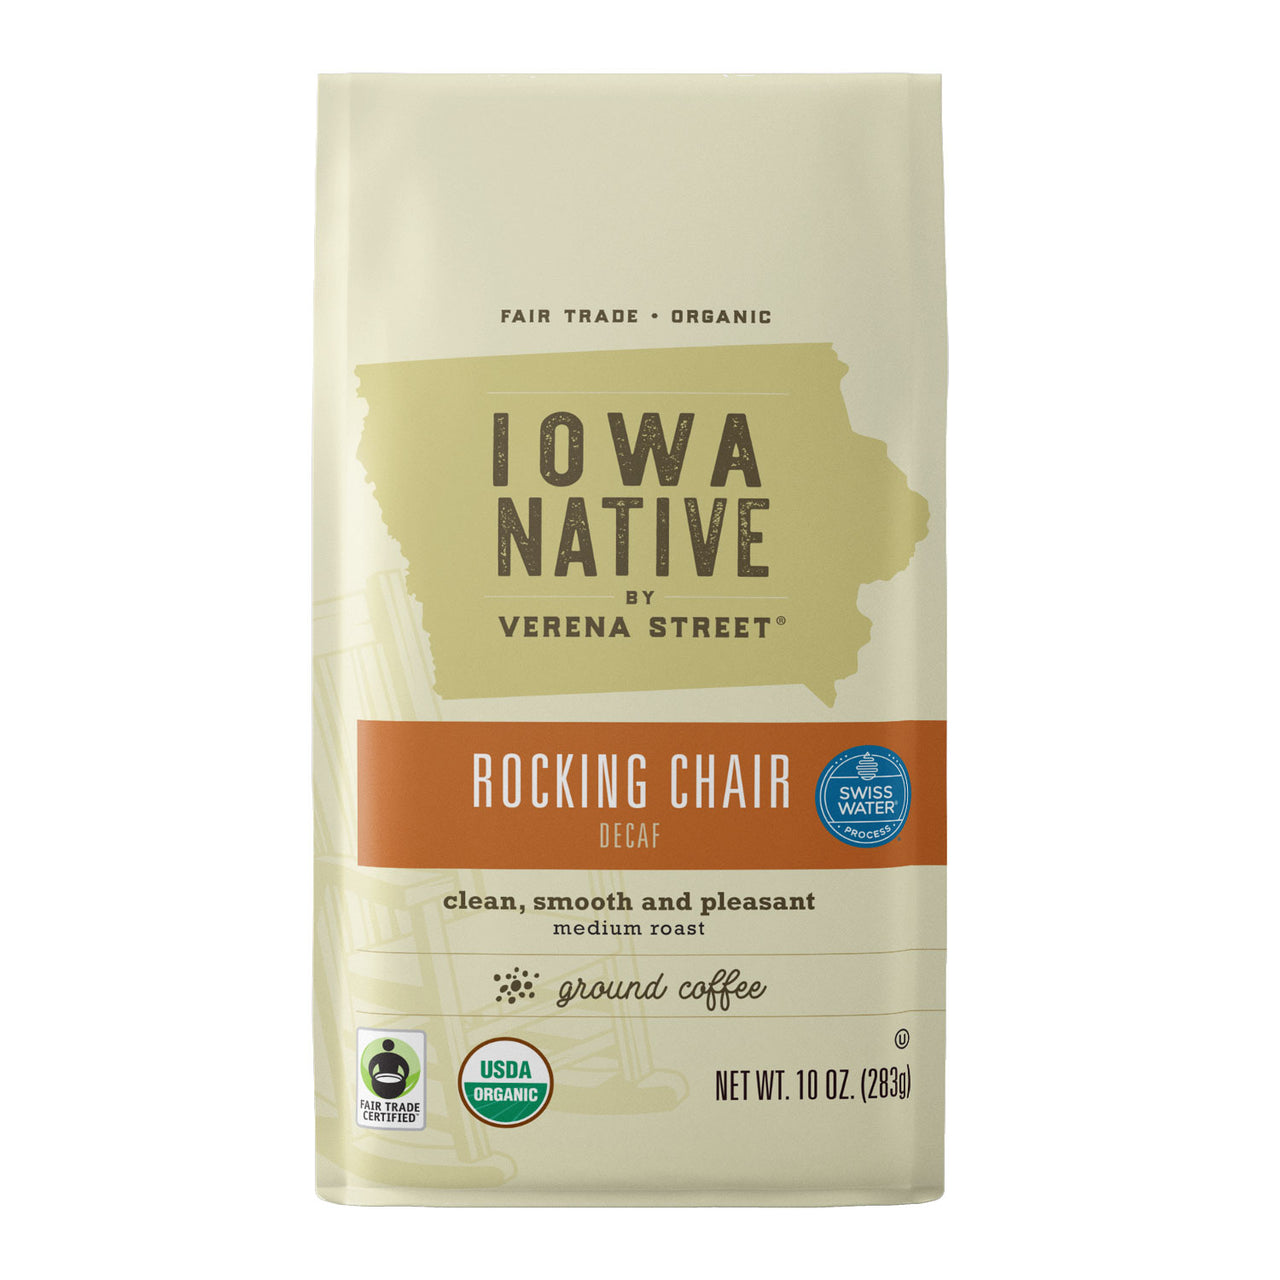 Rocking Chair Decaf Swiss Water Process - Fair Trade Organic Coffee - Verena Street Coffee Co.